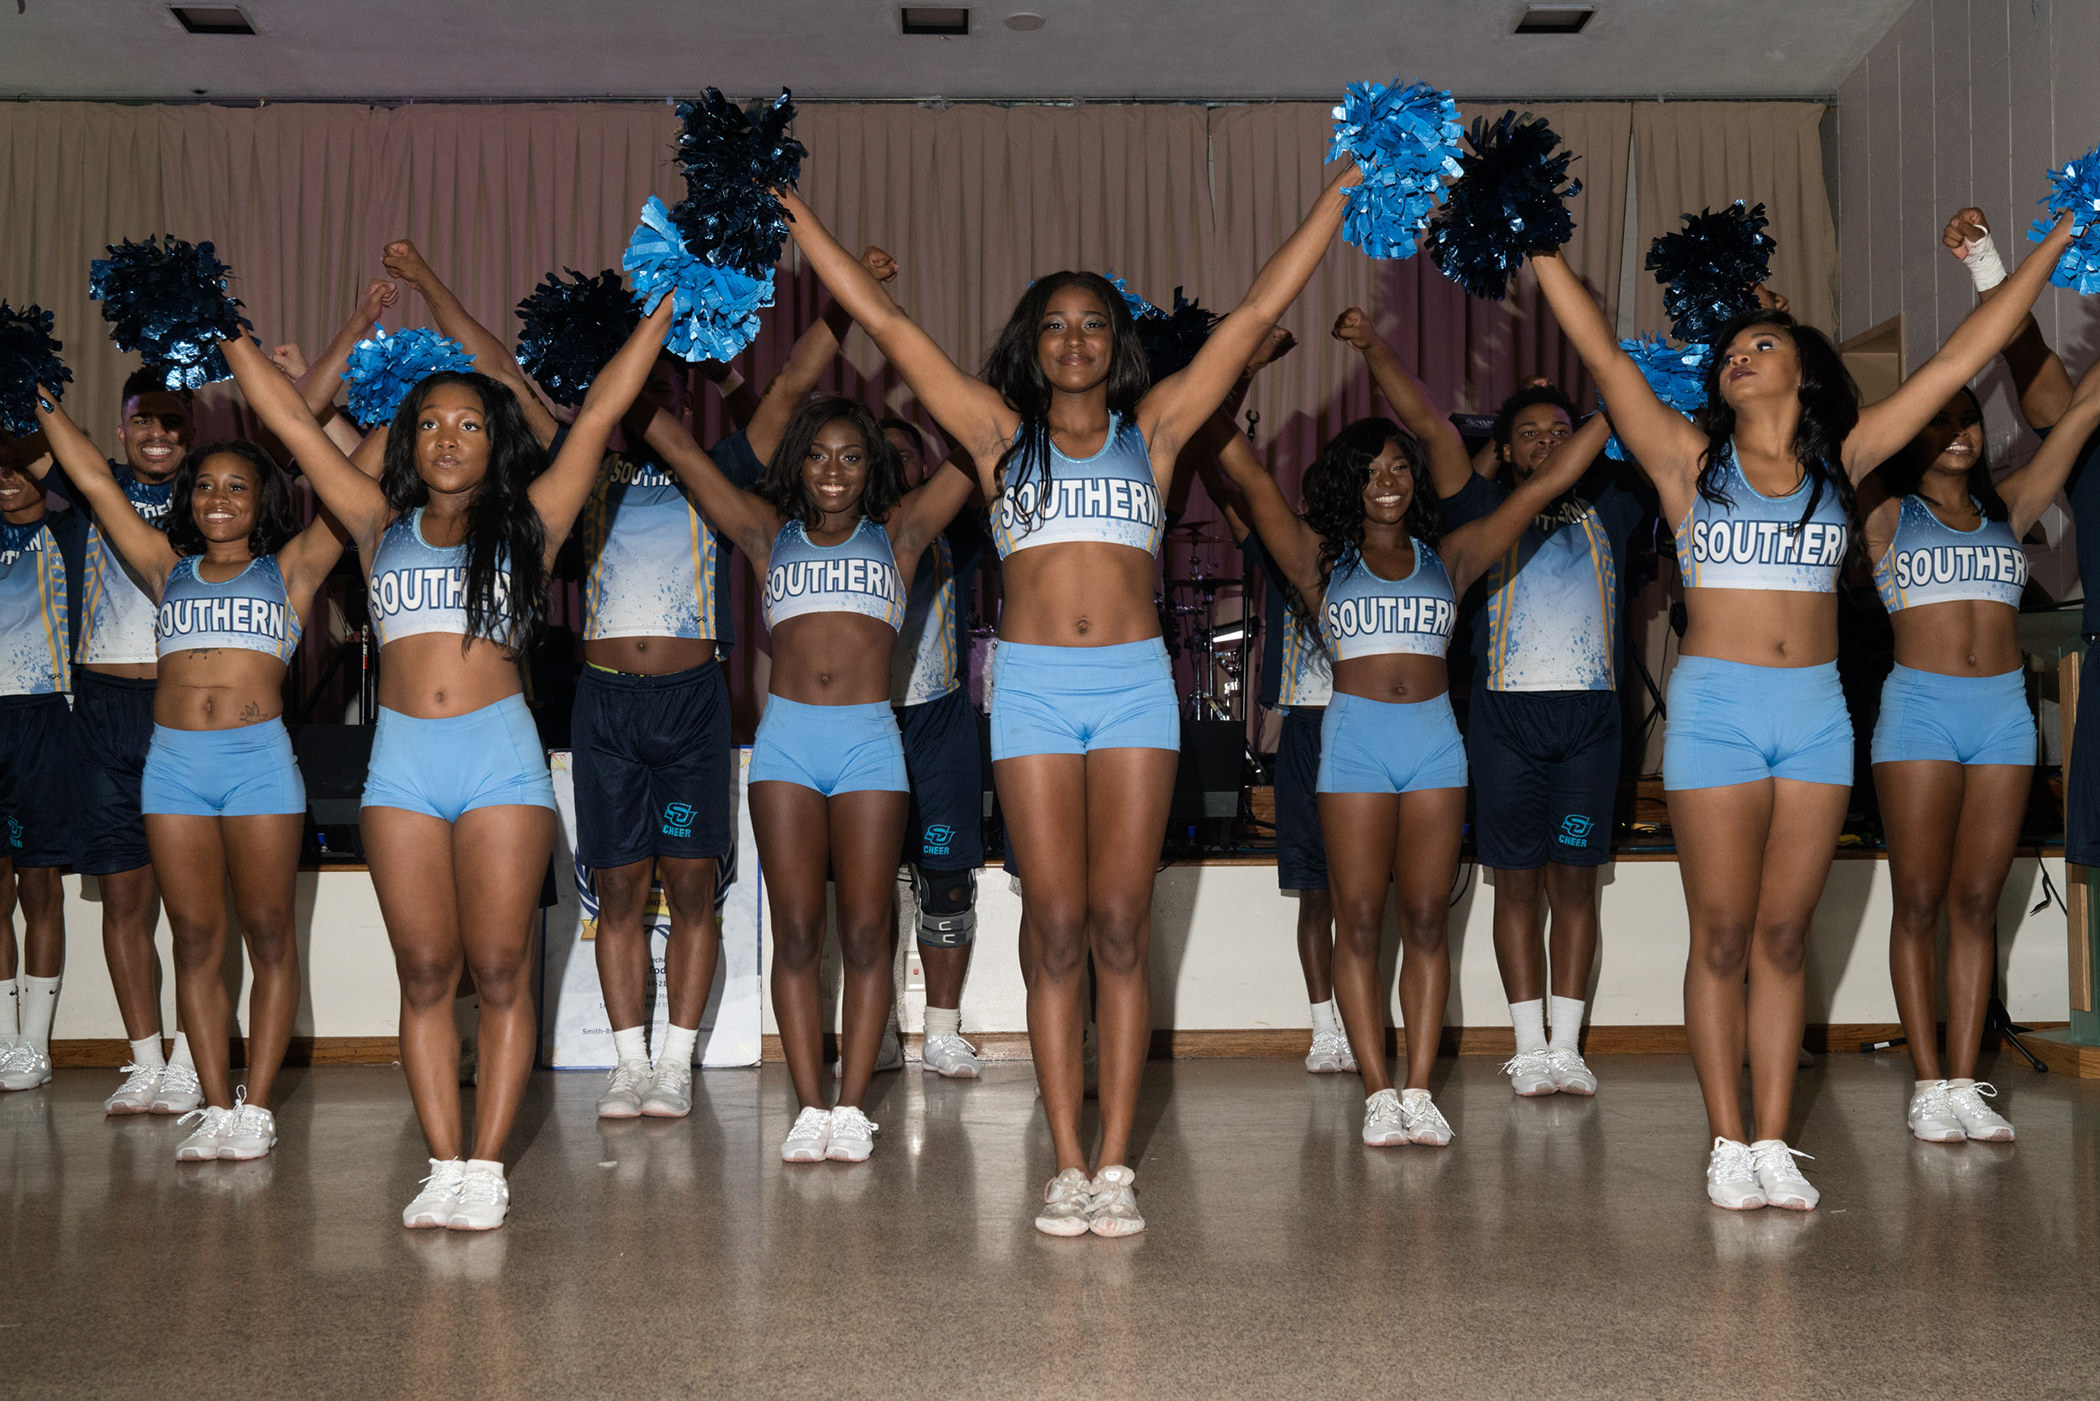 A team of cheerleaders in blue uniforms perform in their school gymnasium